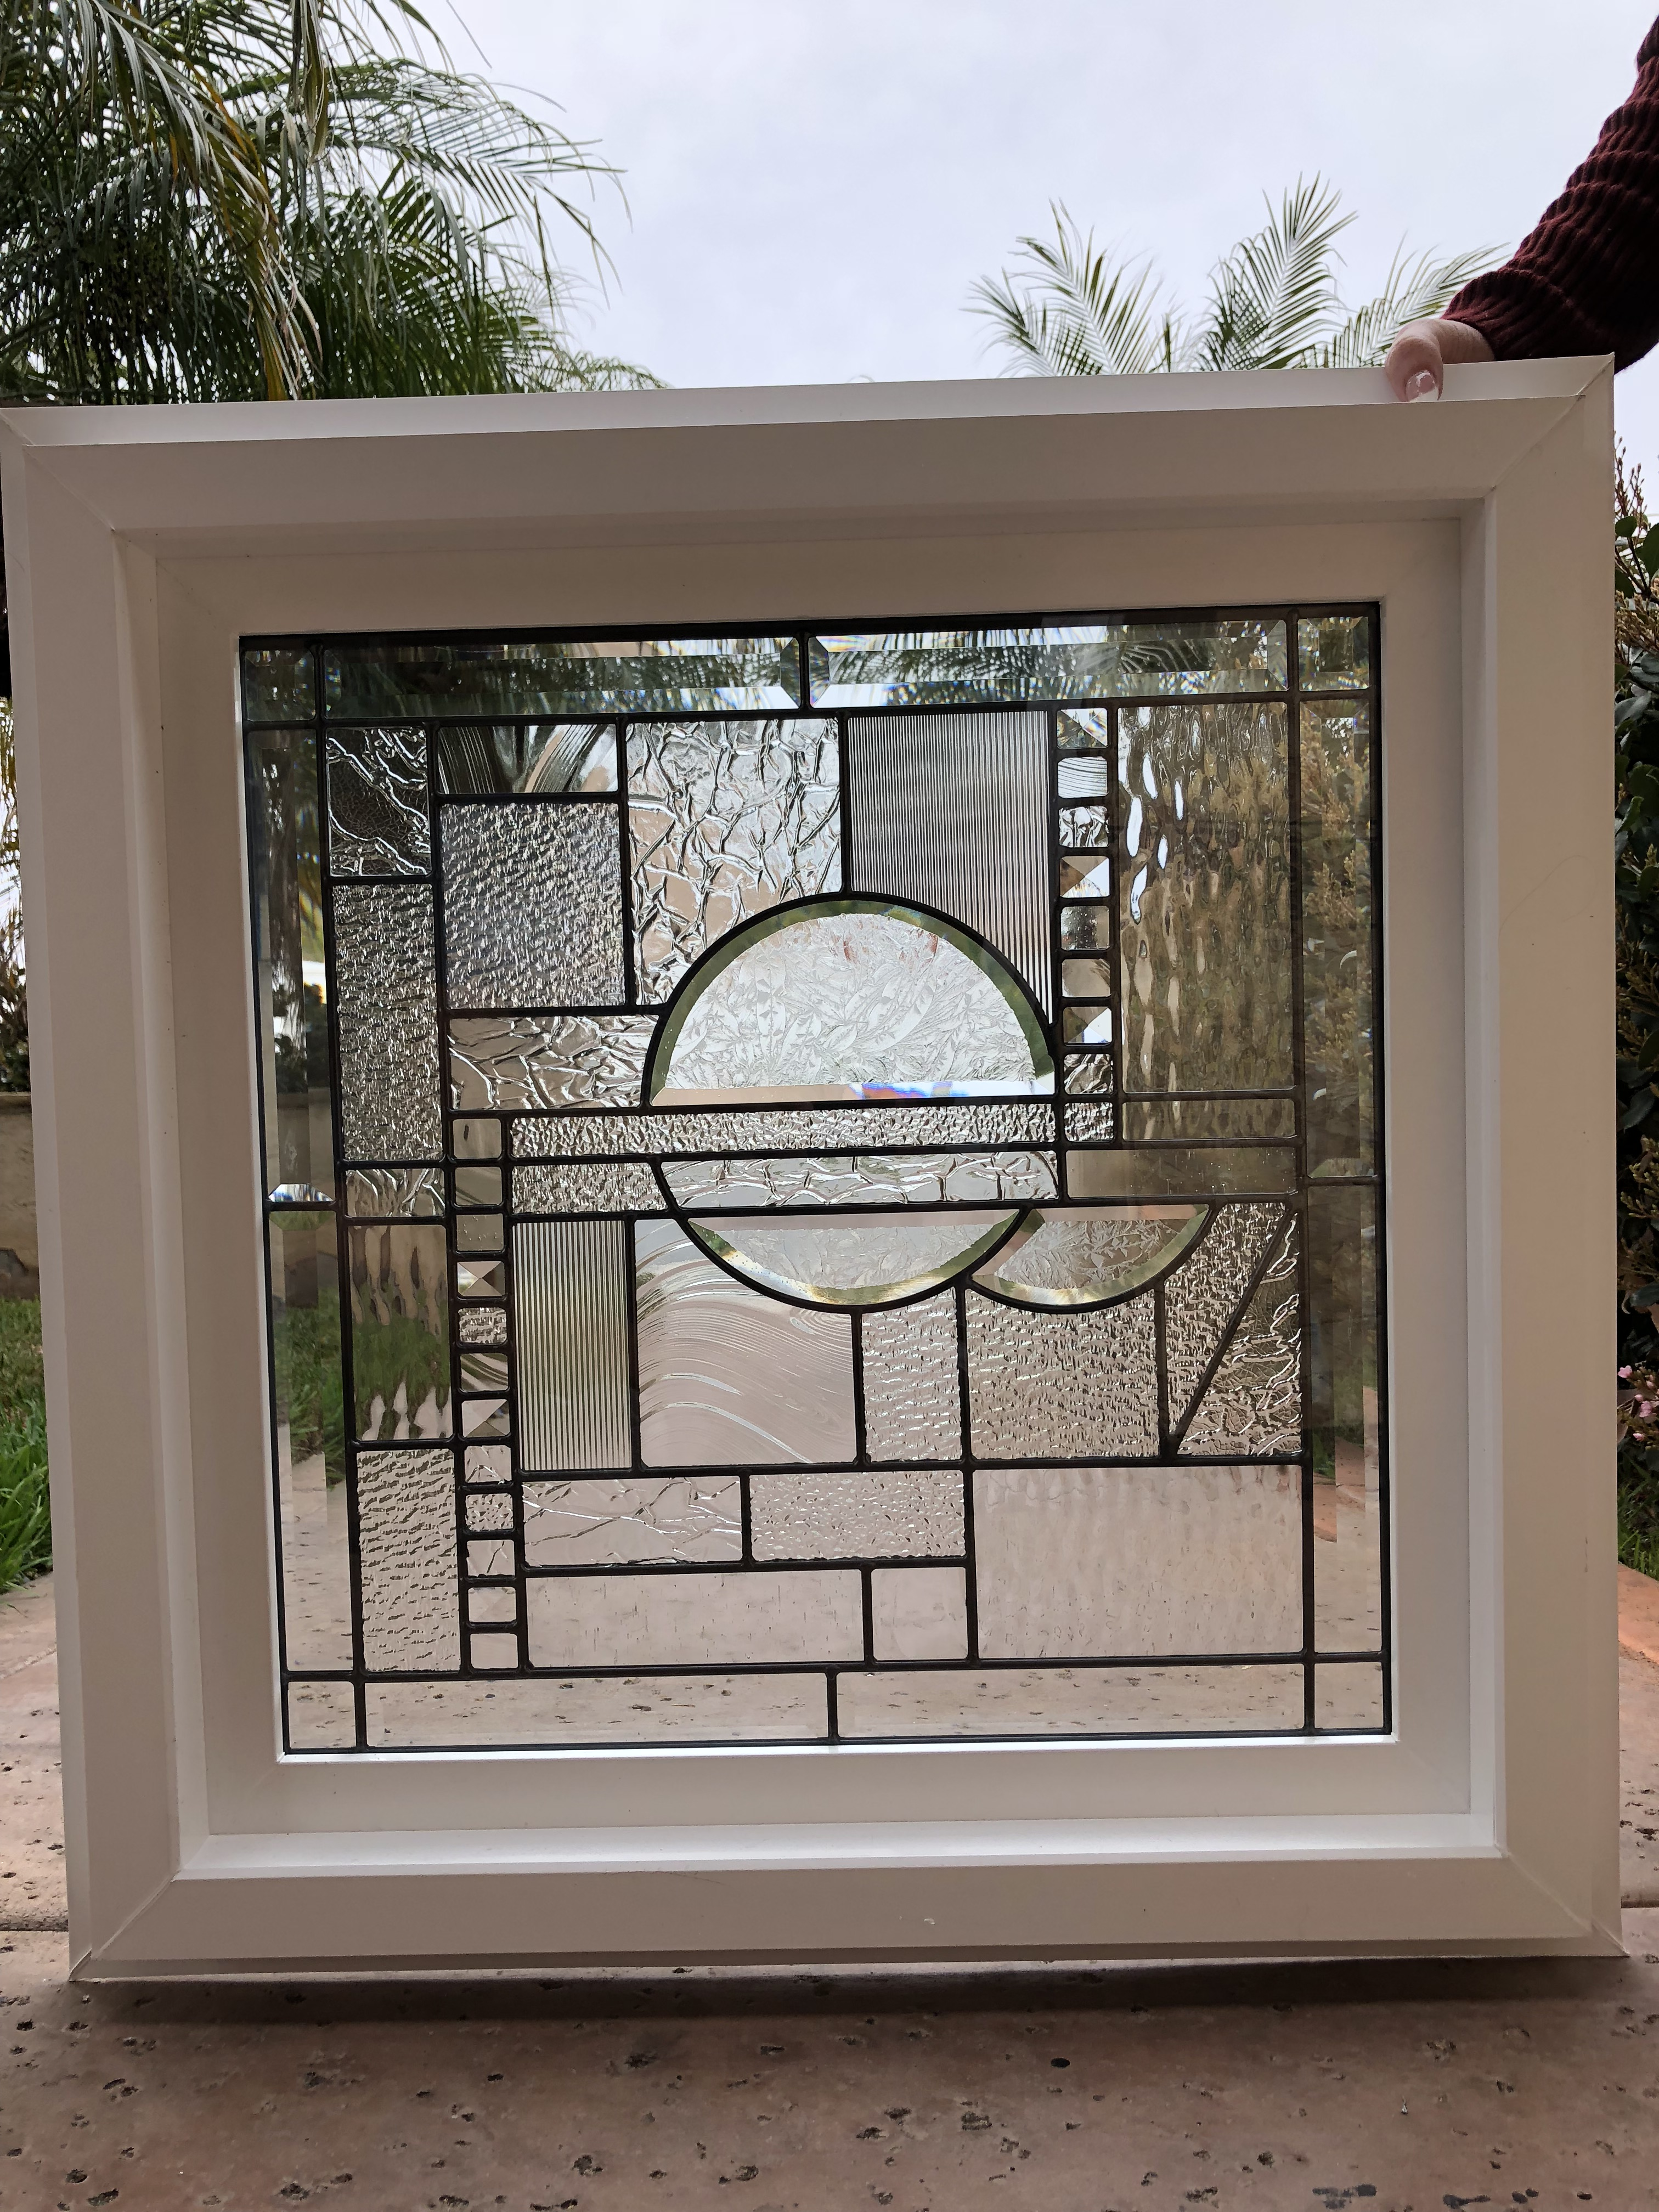 The Quot Palos Verdes Quot Mission Beveled Leaded Stained Glass